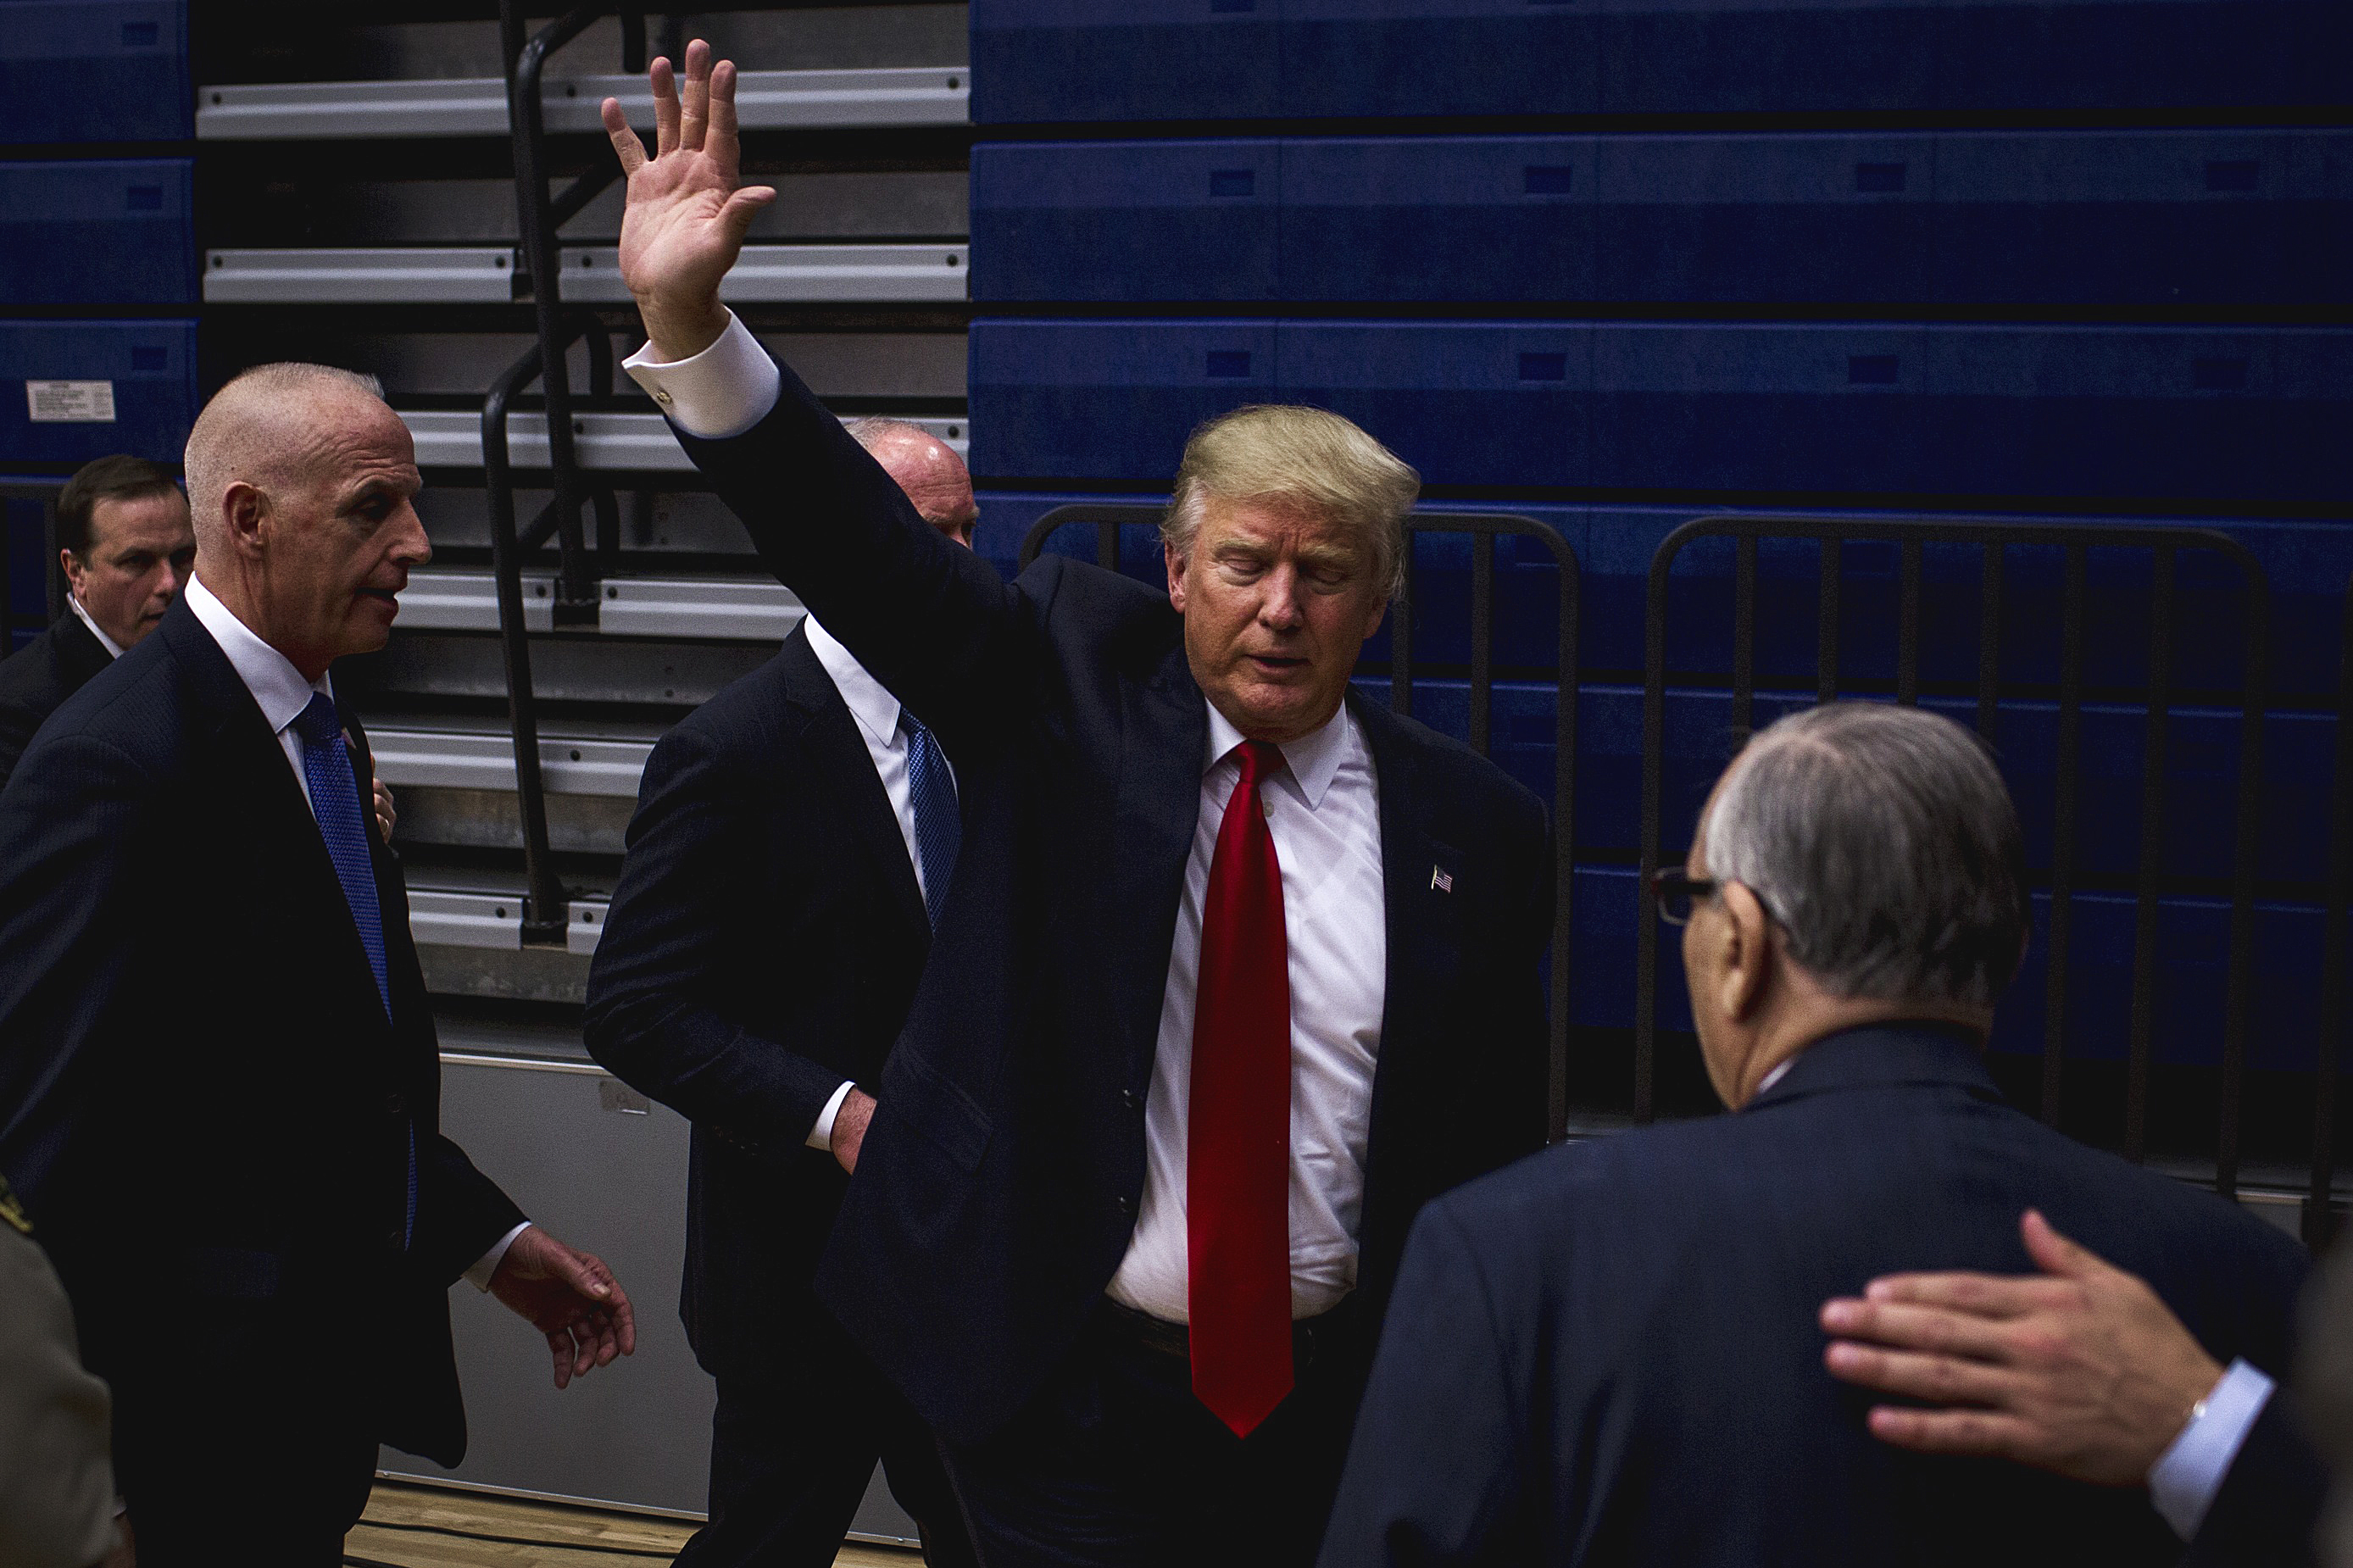 Donald Trump at his rally in Des Moines, Iowa on Jan. 26, 2016.